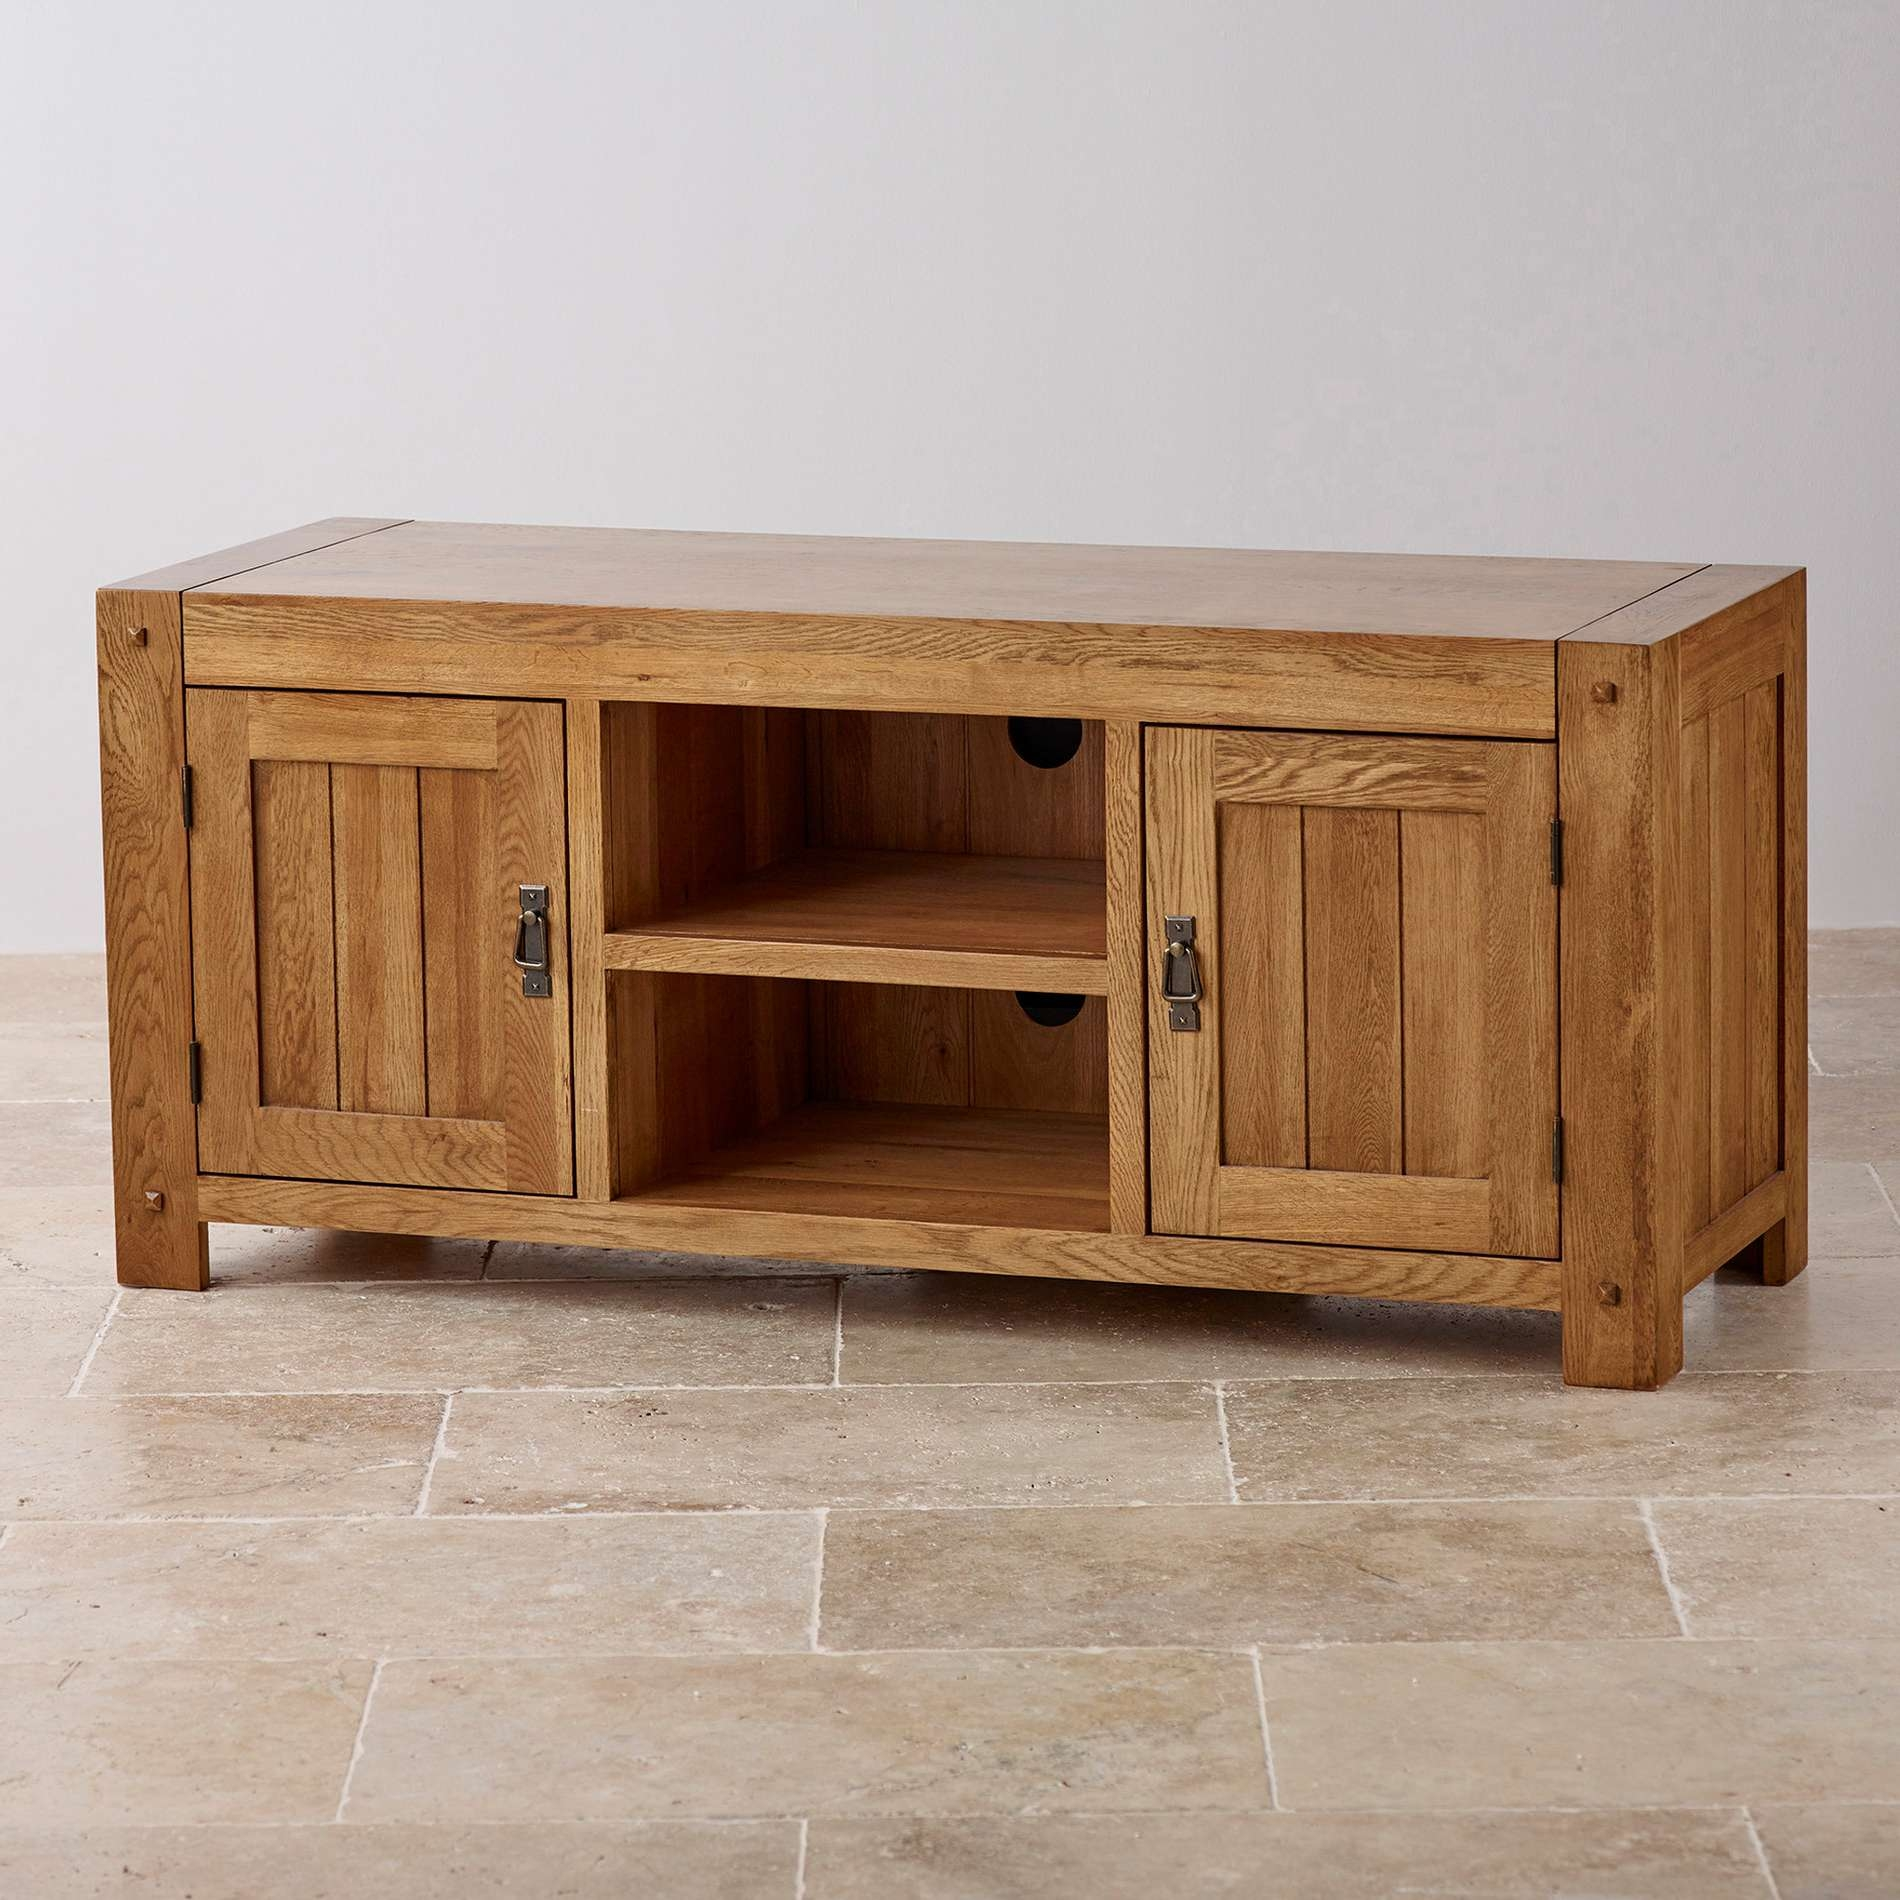 Quercus Wide Tv Cabinet In Rustic Solid Oak | Oak Furniture Land Inside Widescreen Tv Cabinets (View 15 of 20)